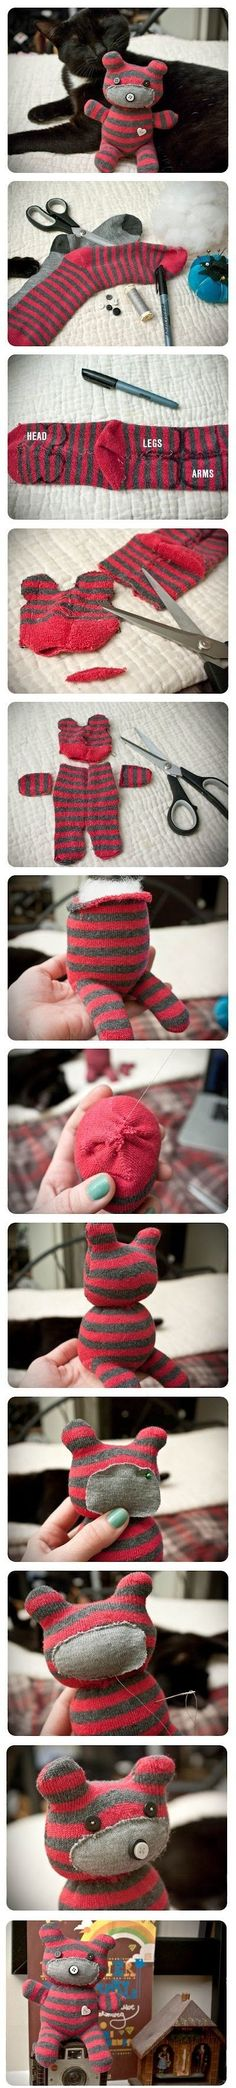 DIY Cute Little Teddy Bear. Cuter cat! :D